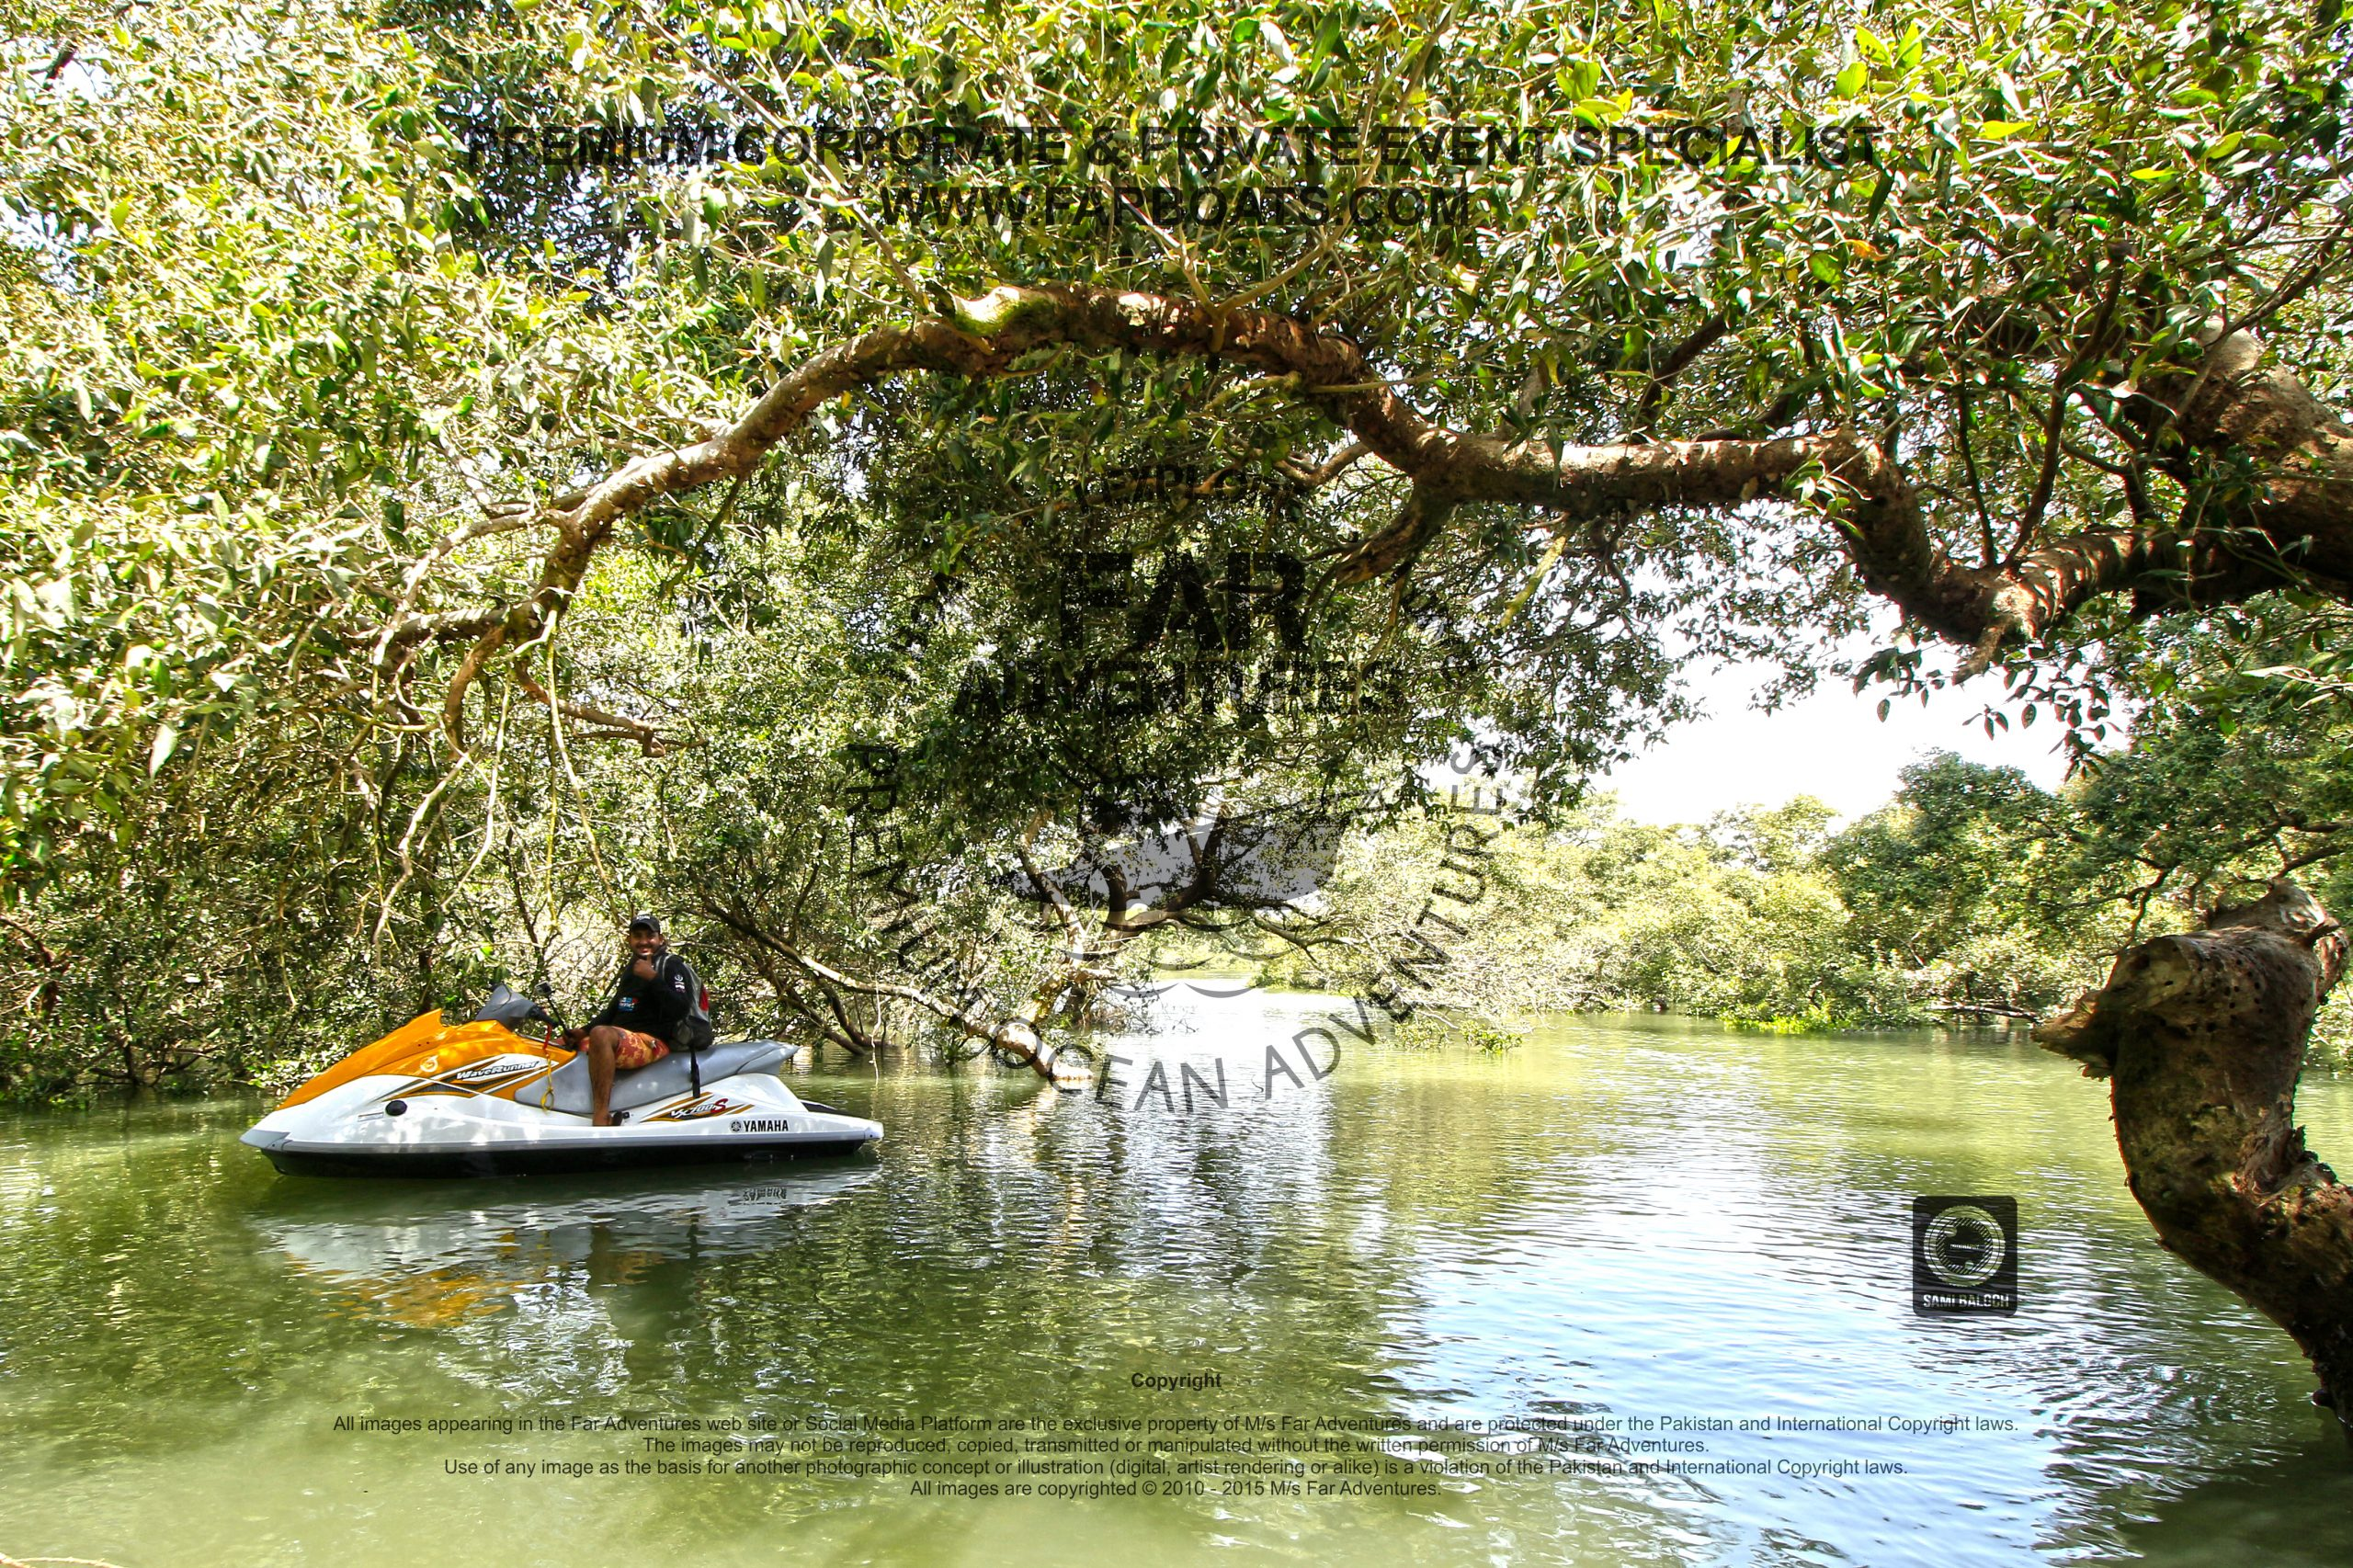 EXCLUSIVE MANGROVE FOREST EXPEDITION